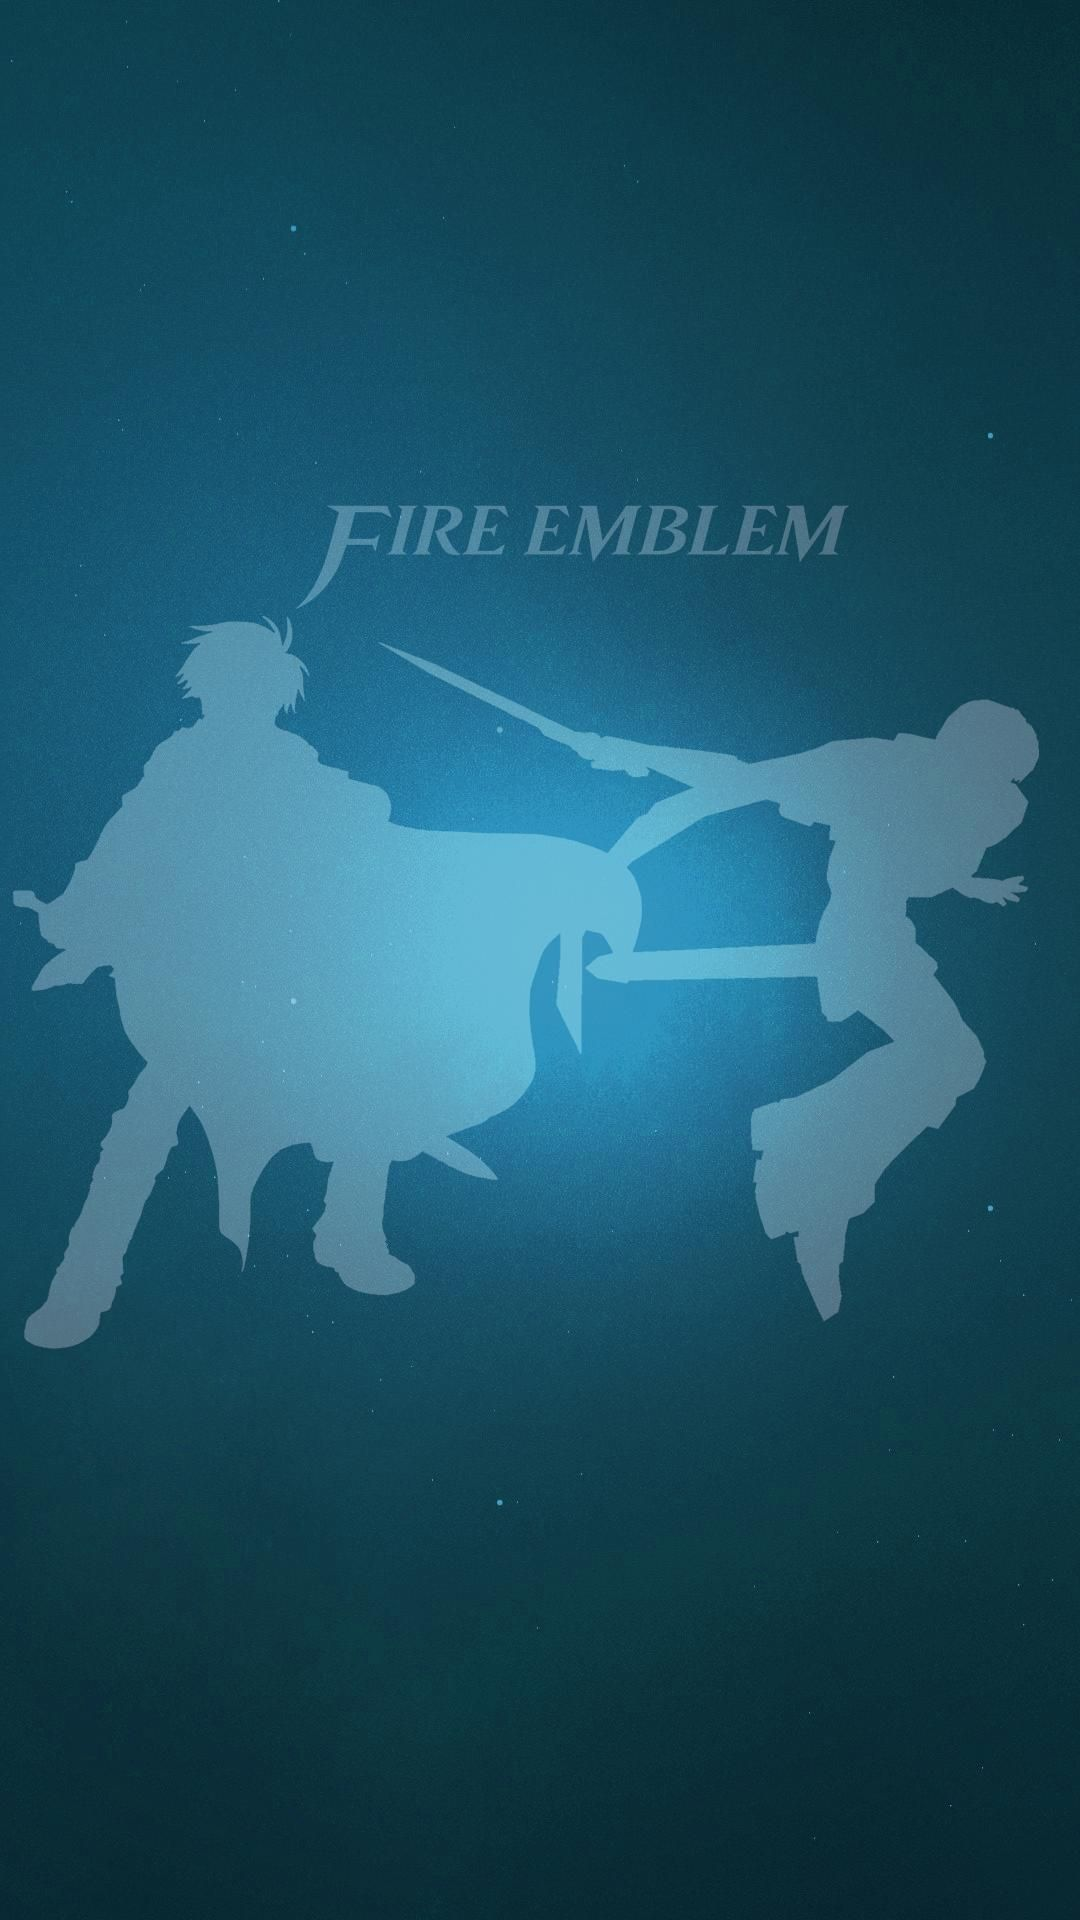 Iphone Wallpaper Smash Melee Fire Emblem Wallpaper Iphone